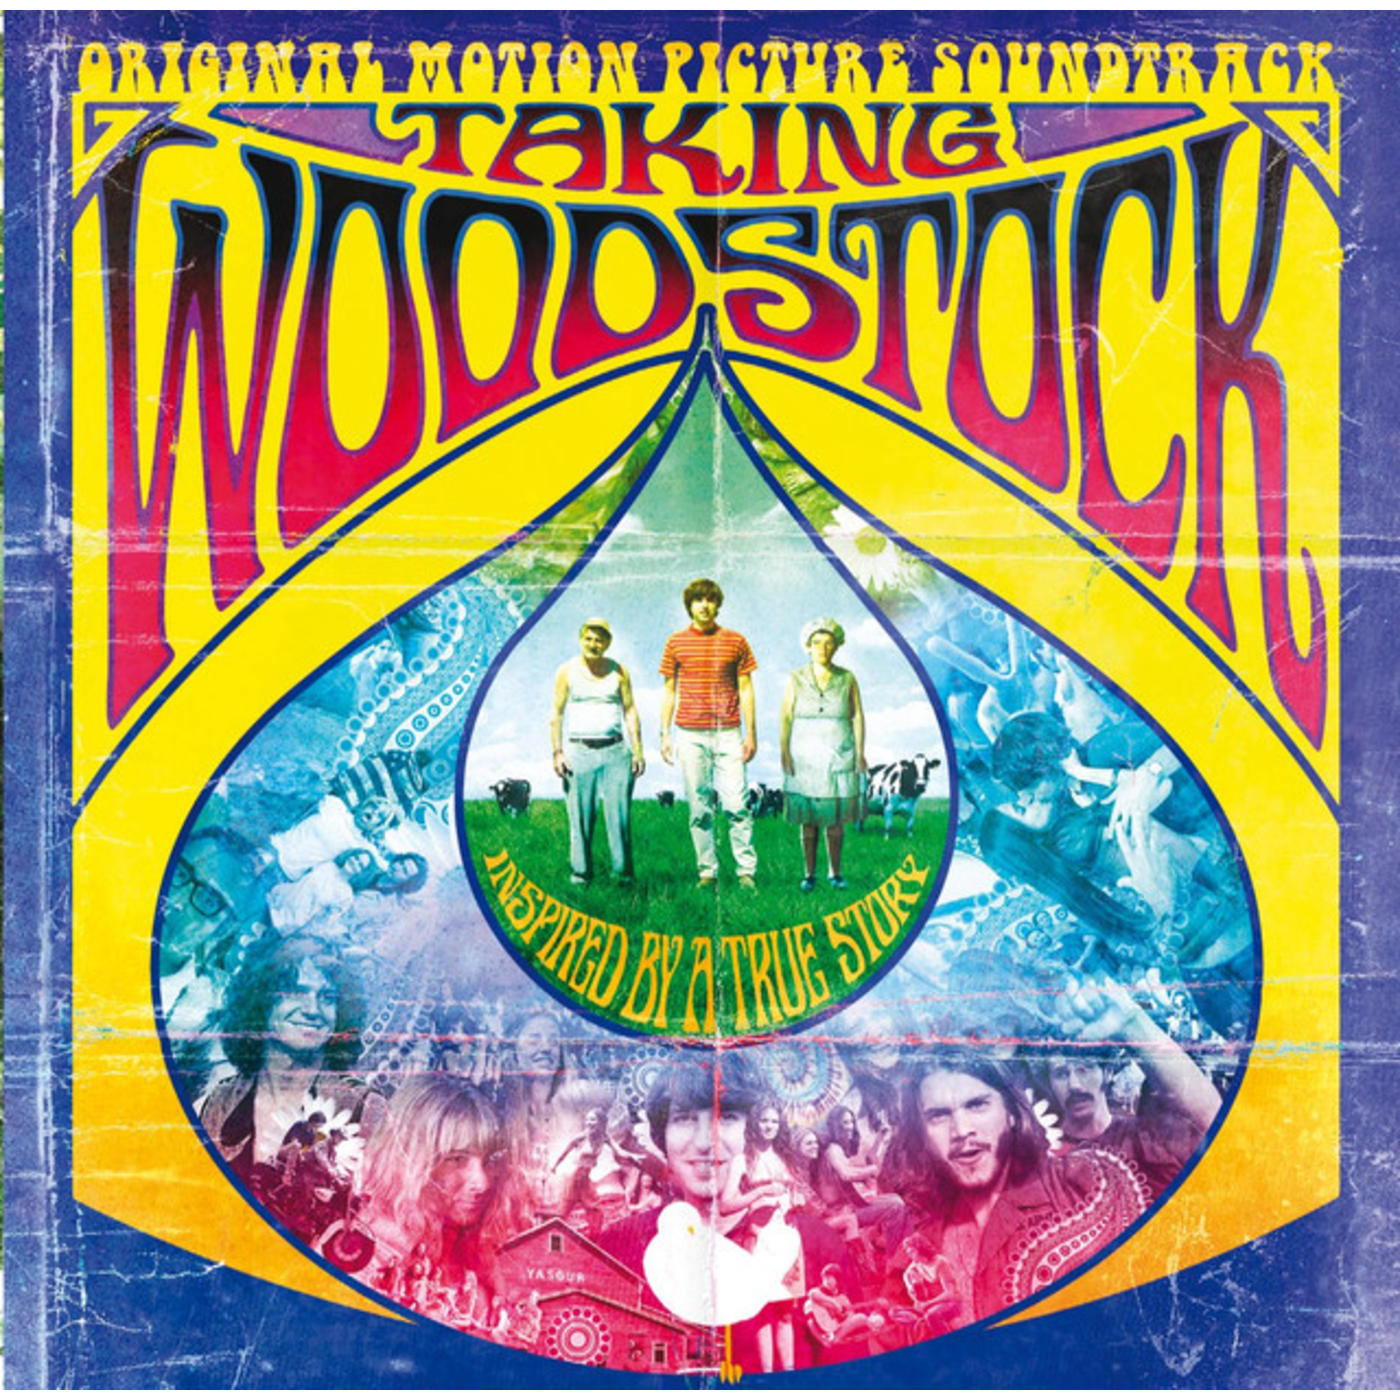 Taking Woodstock [Original Motion Picture Soundtrack]